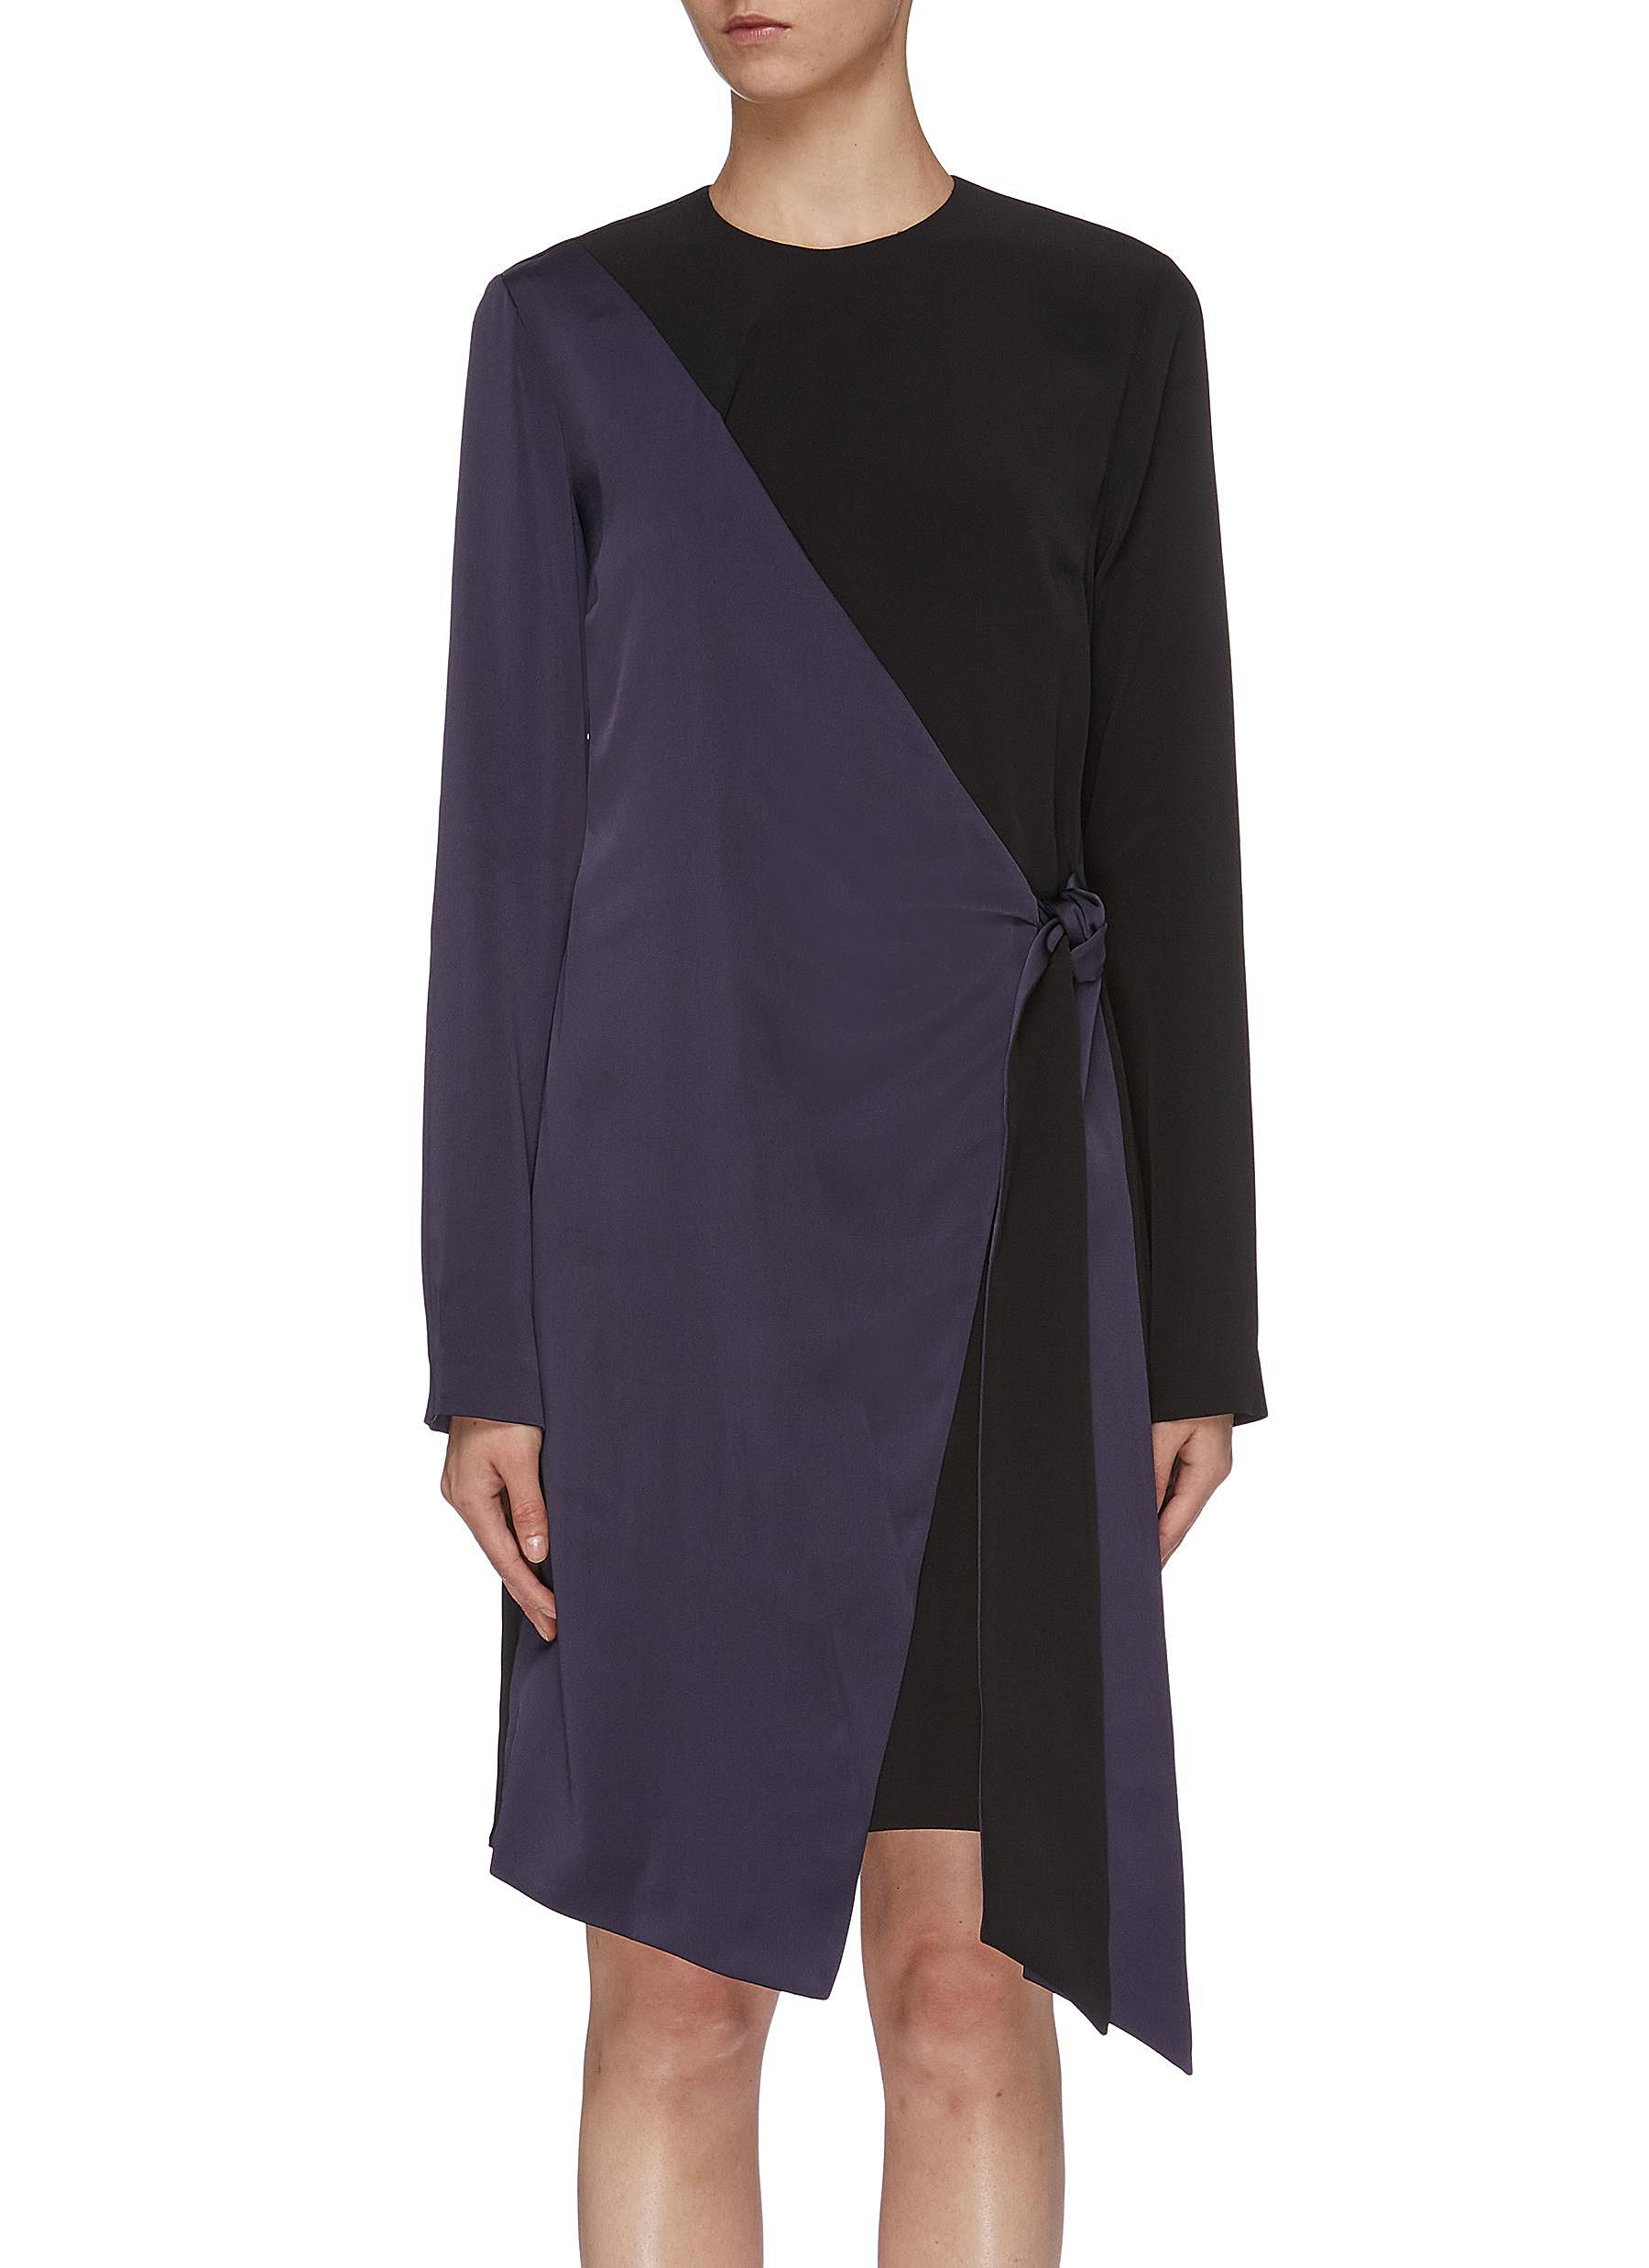 Tie colourblock wrap panel dress by Victoria, Victoria Beckham